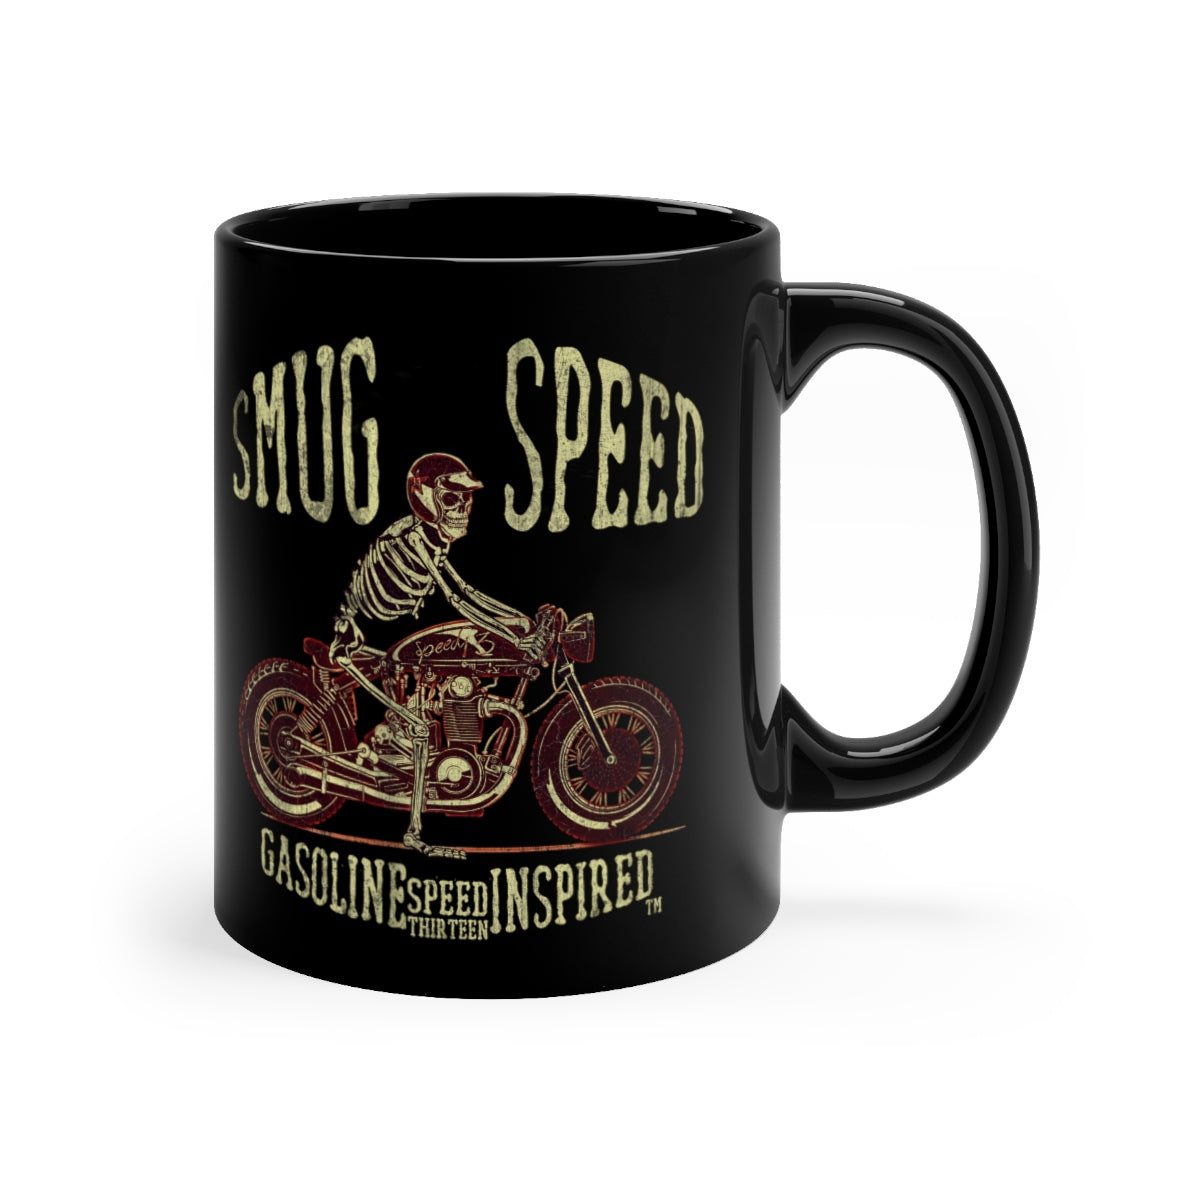 Smug Speed - Black mug 11oz